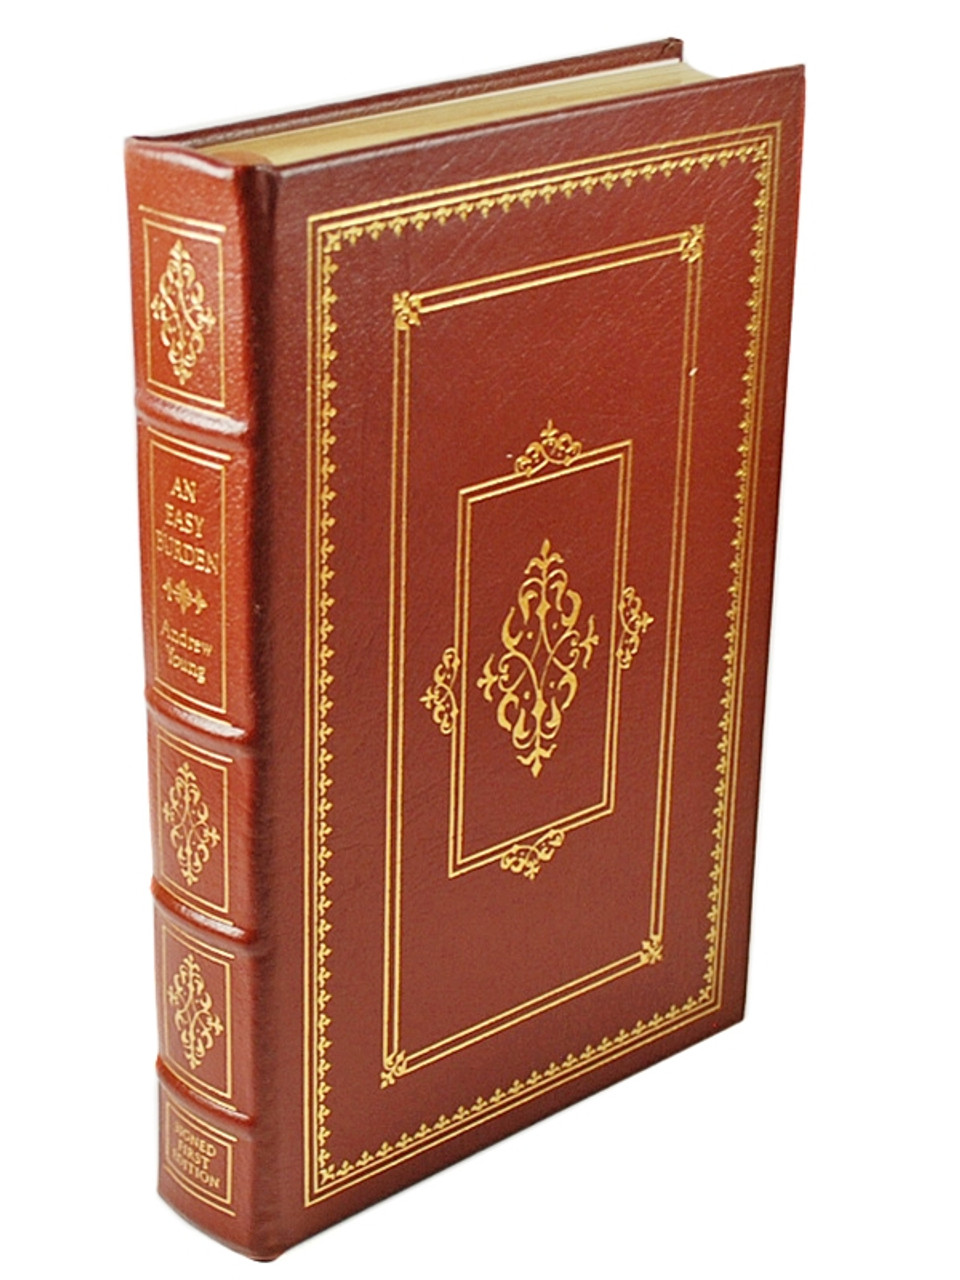 Easton Press Andrew Young An Easy Burden Signed First Edition Leather Bound Book